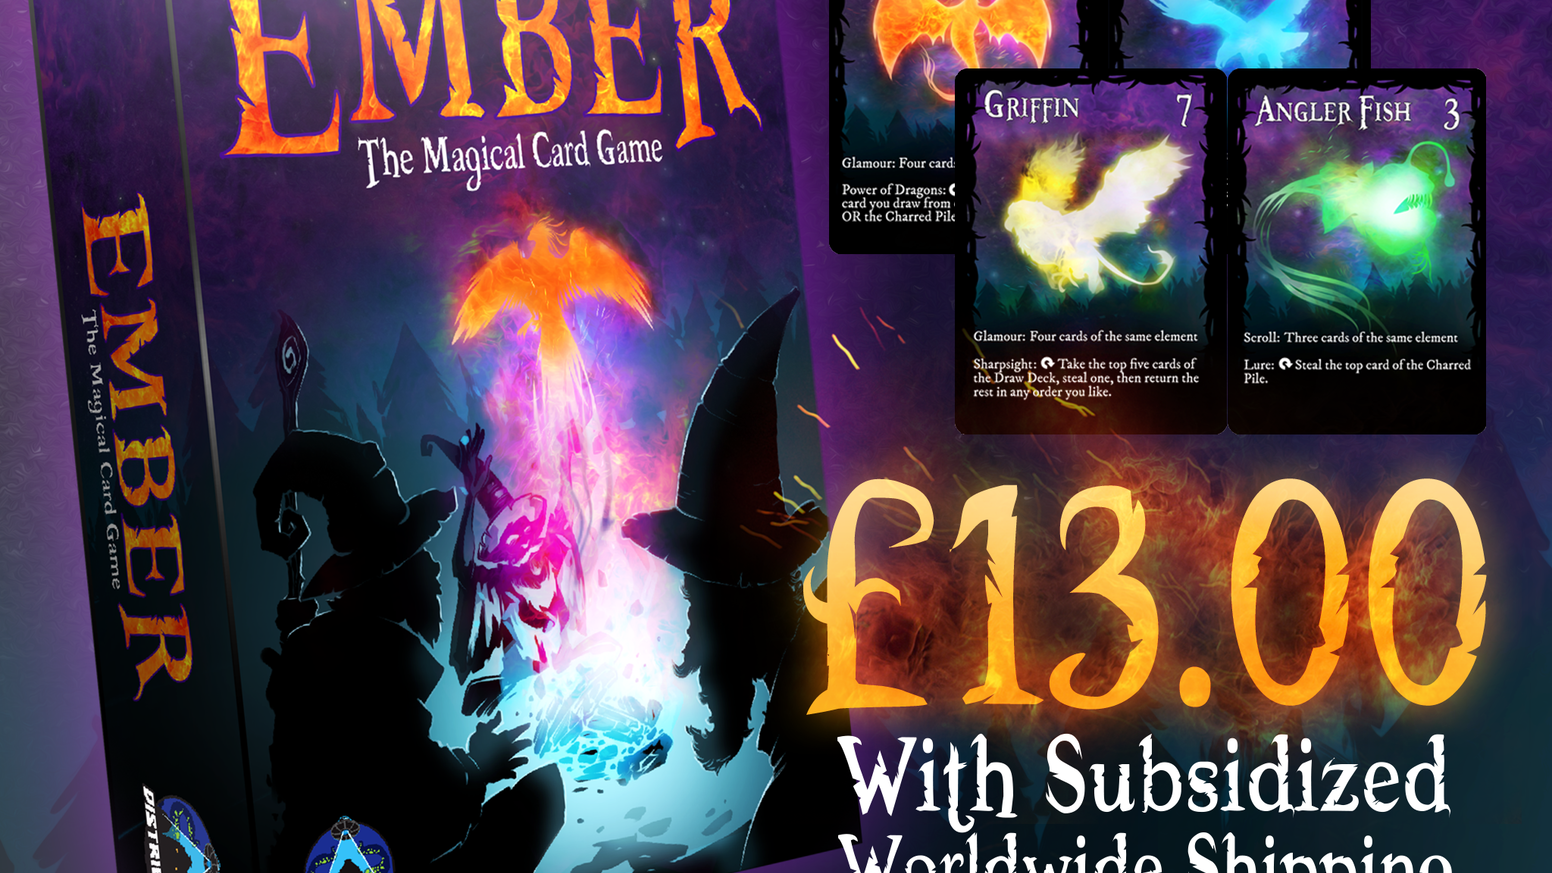 Ember: the Magical Card Game: an exciting, fast-paced card game of mythical monster conjuring that absolutely anyone can learn.